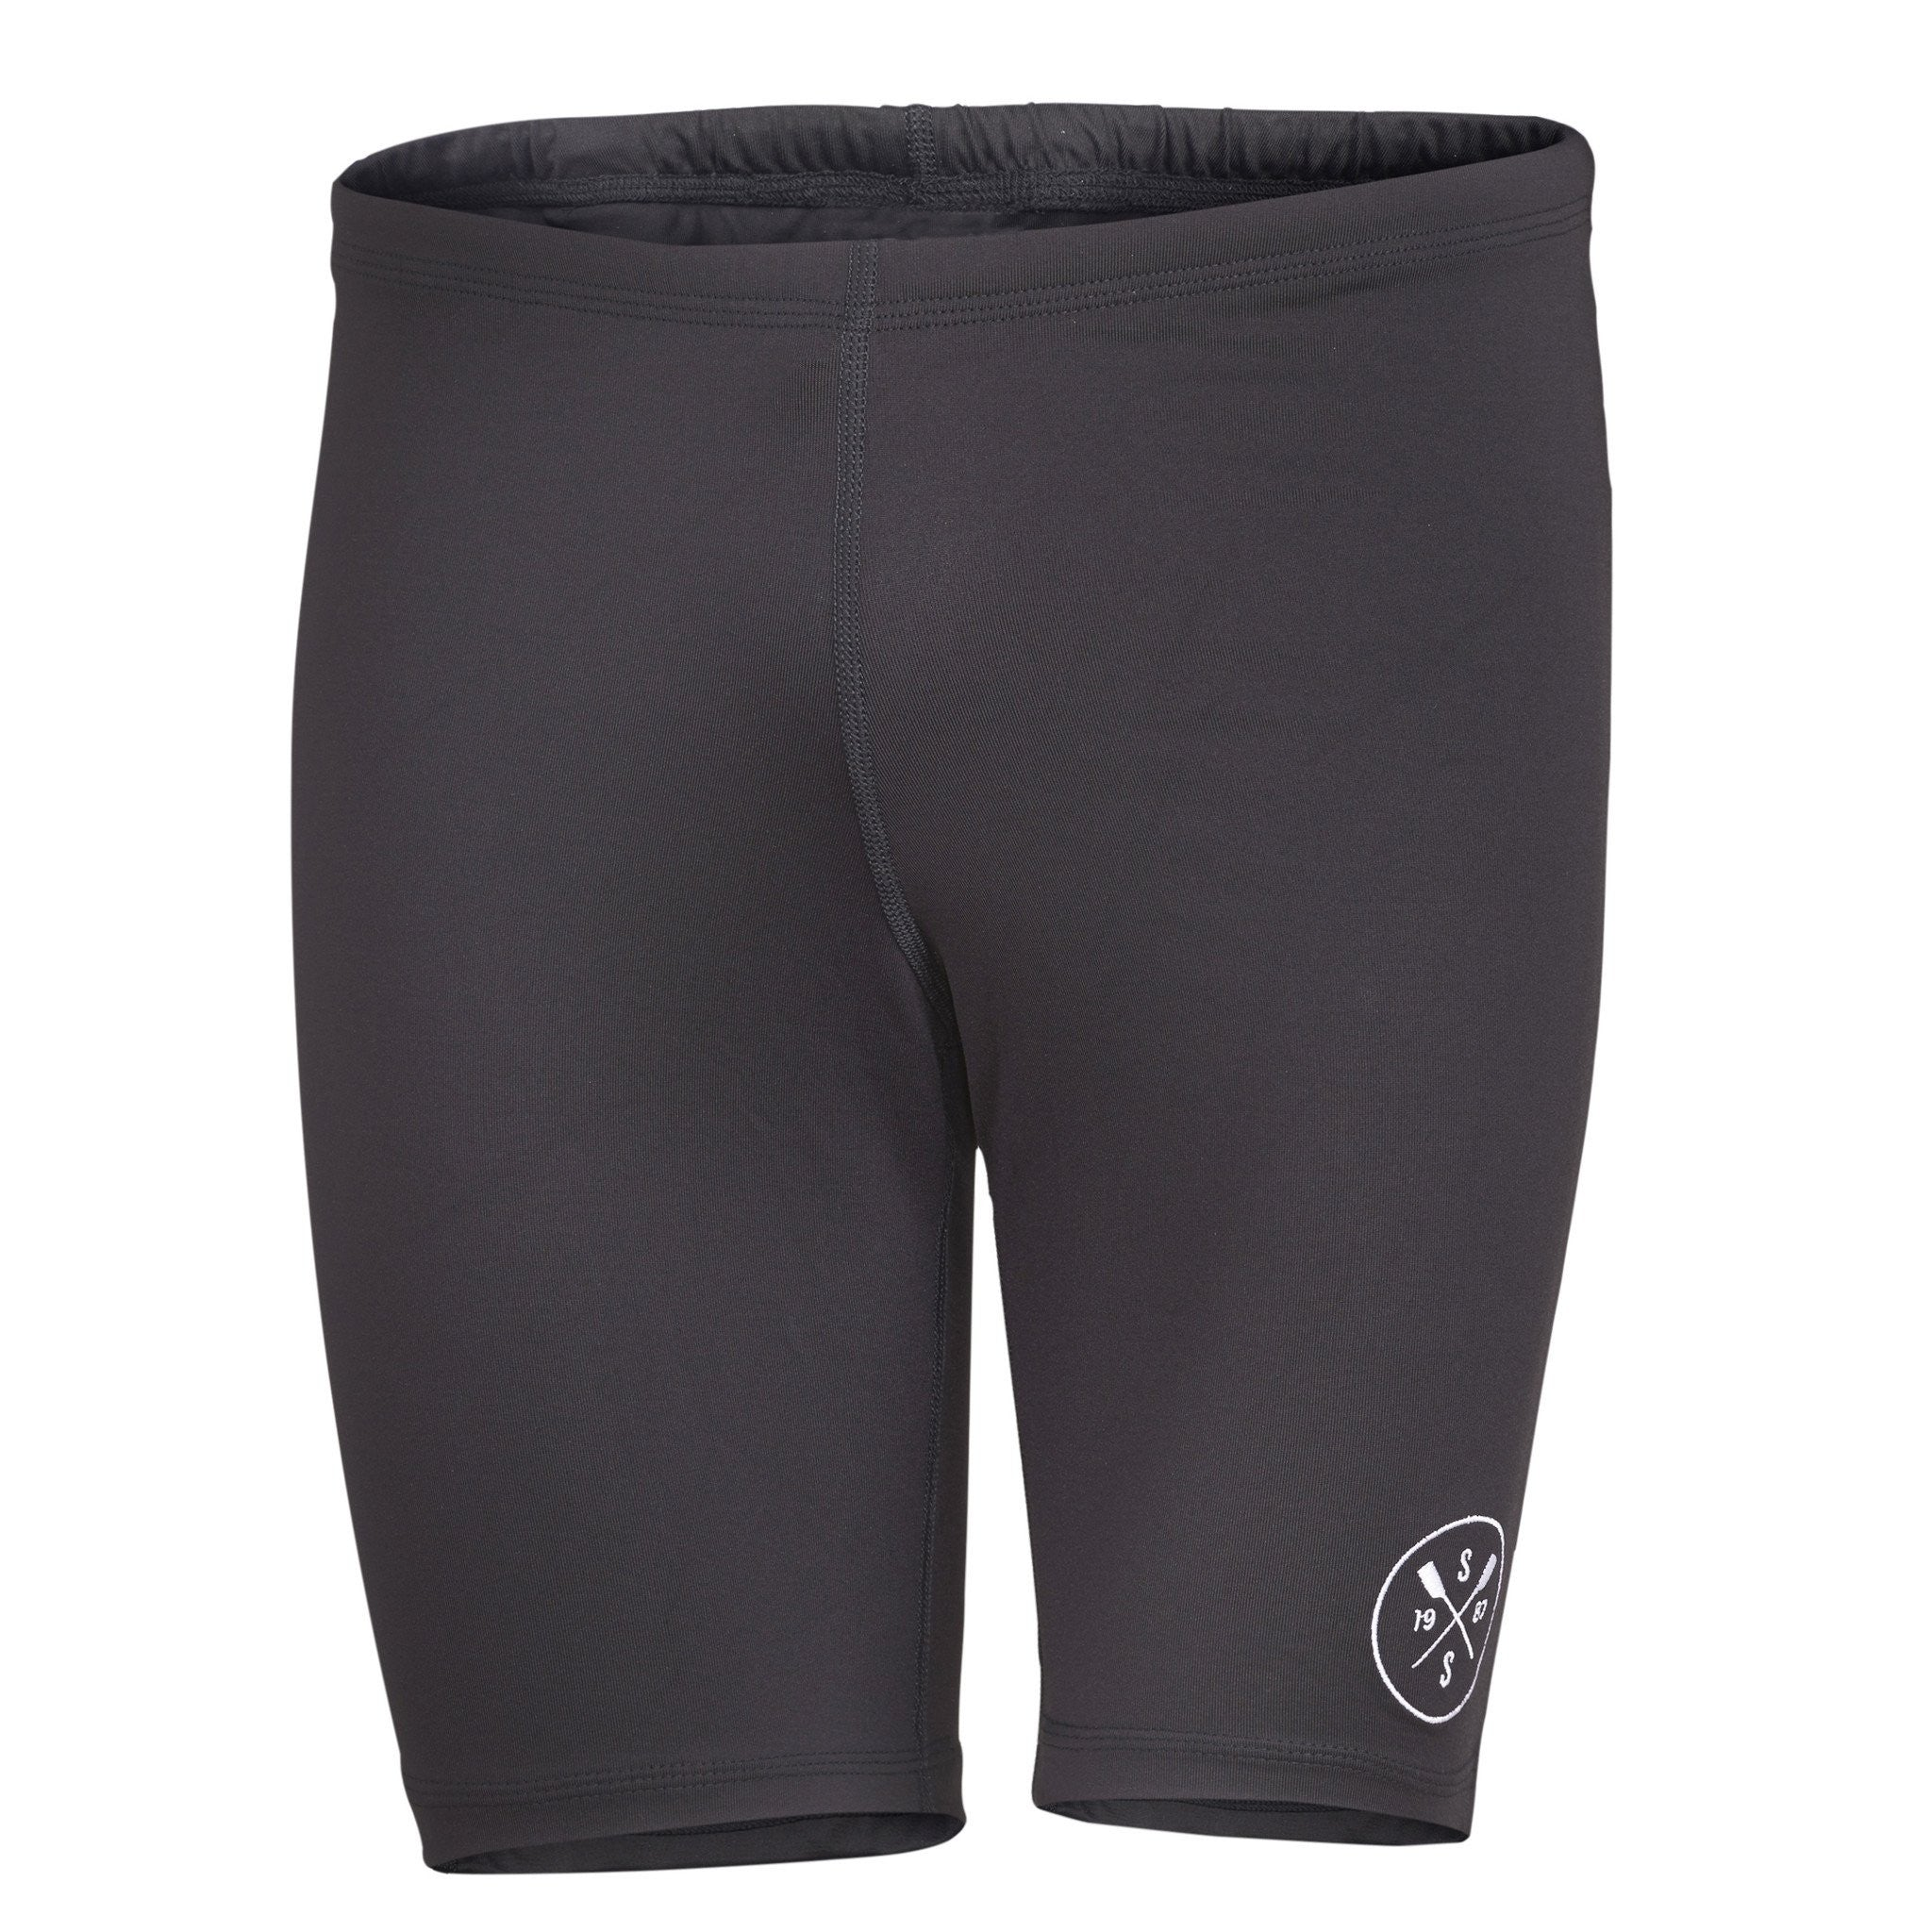 Rowing Trou Shorts